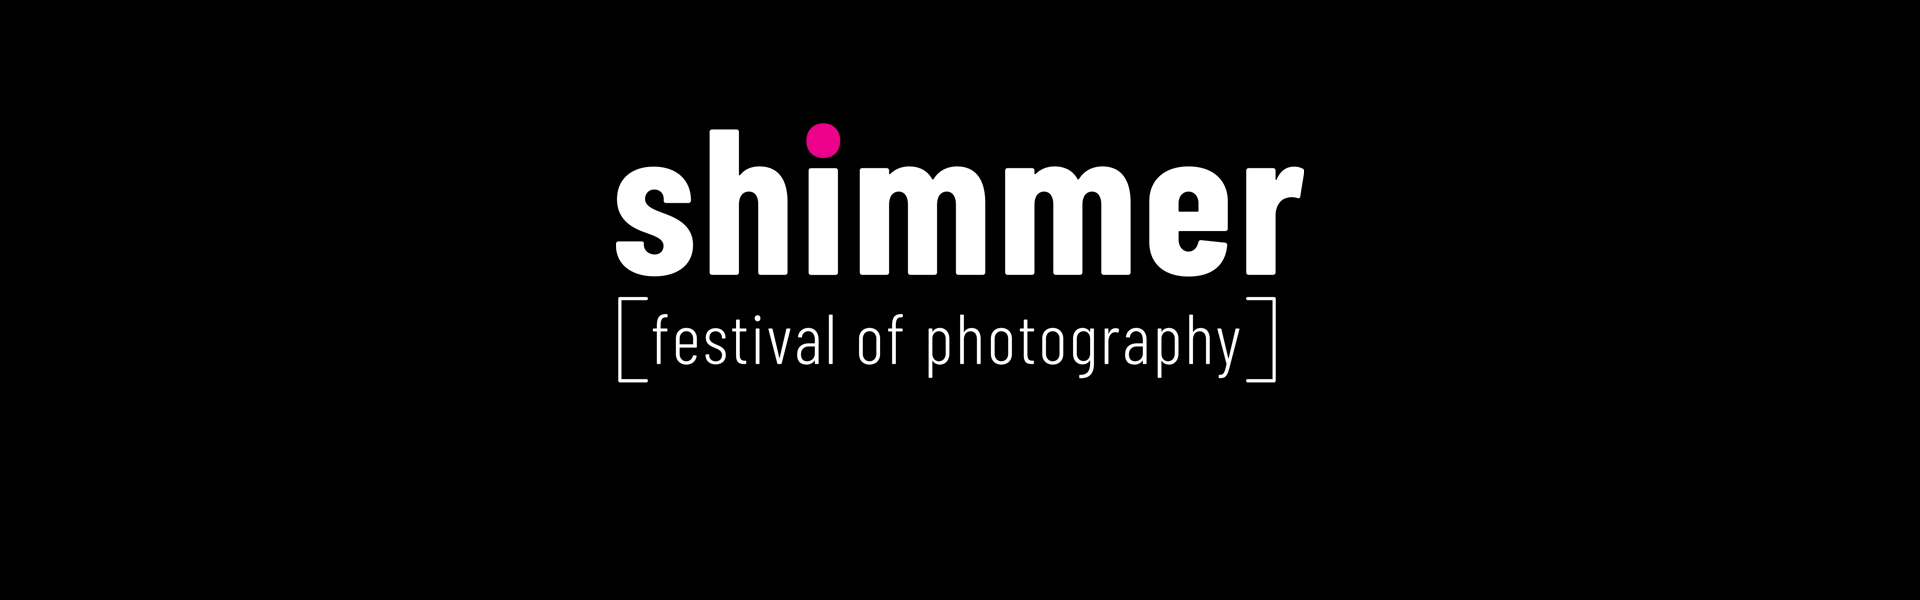 Shimmer Festival of Photography